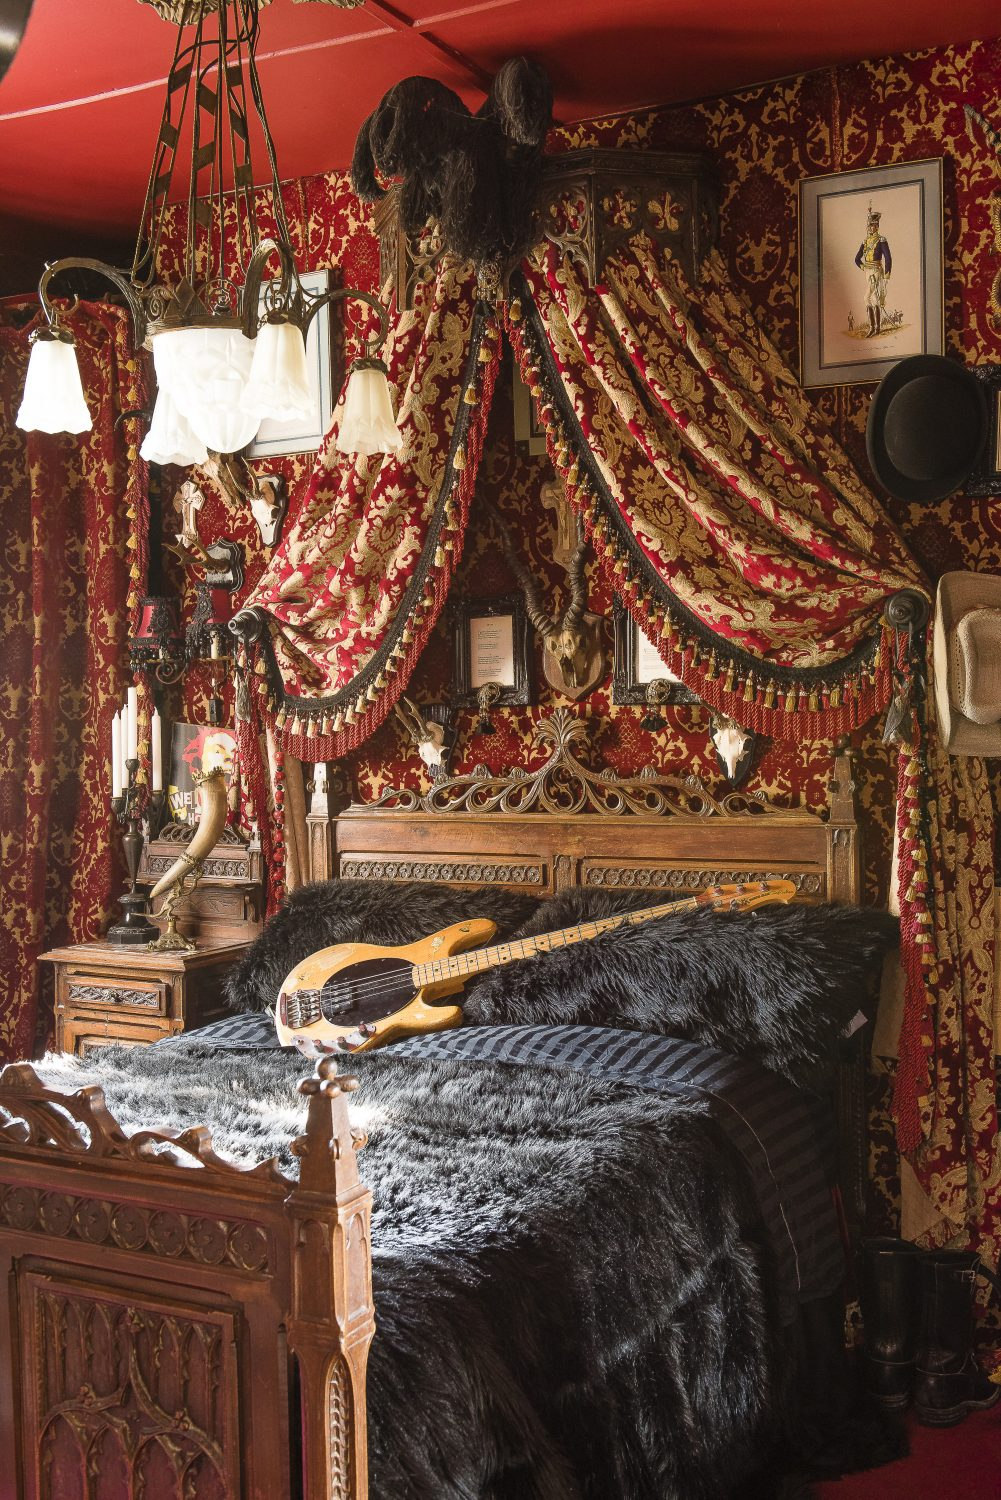 The lower ground-floor bedroom is Paul's bass-playing retreat. The bed and side table are attributed to Augustus Pugin, Paul covered the walls in fabric from Wayward using a staple gun